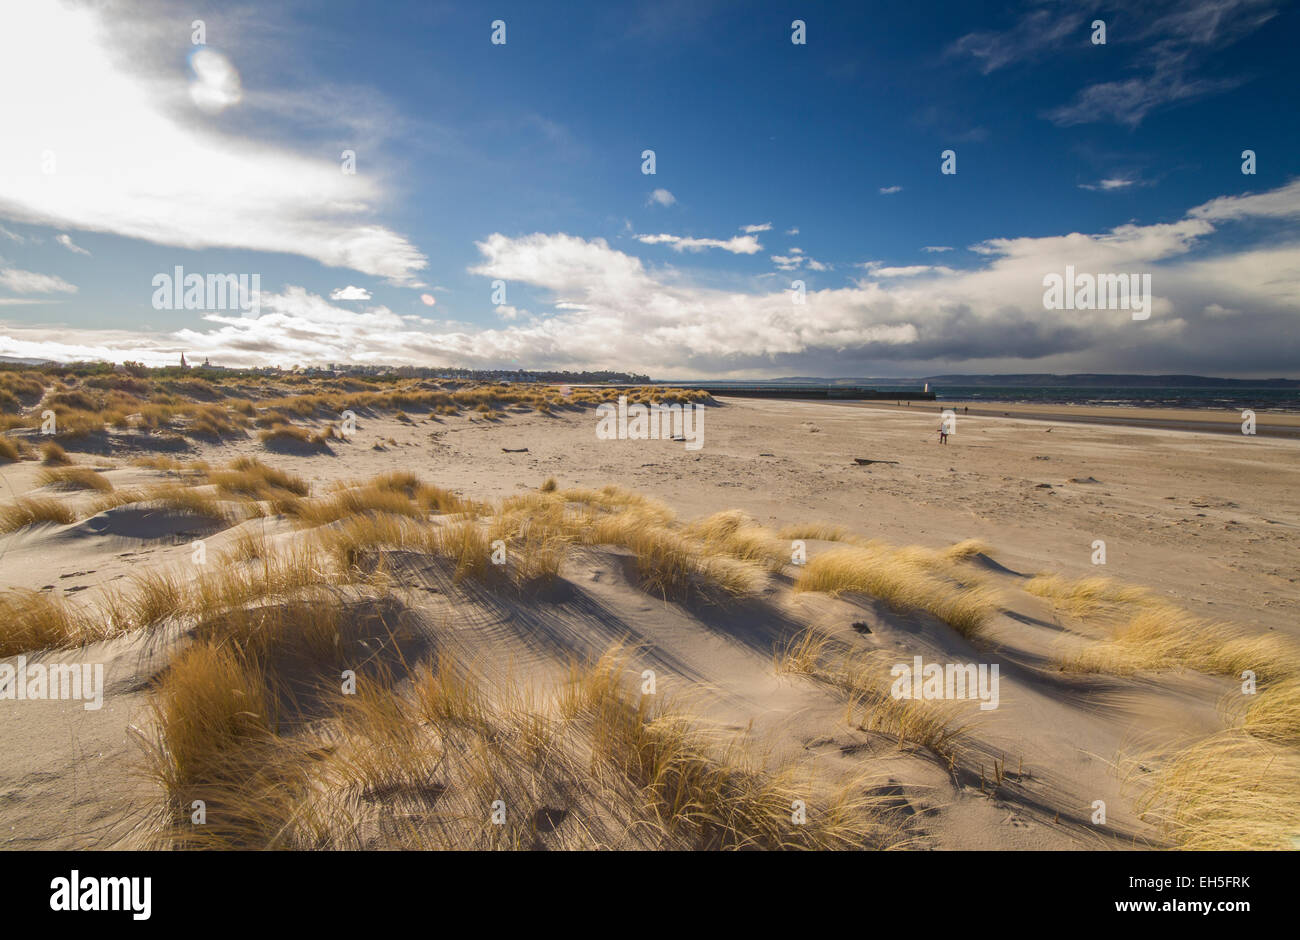 Wide angle view of Nairn beach - Stock Image